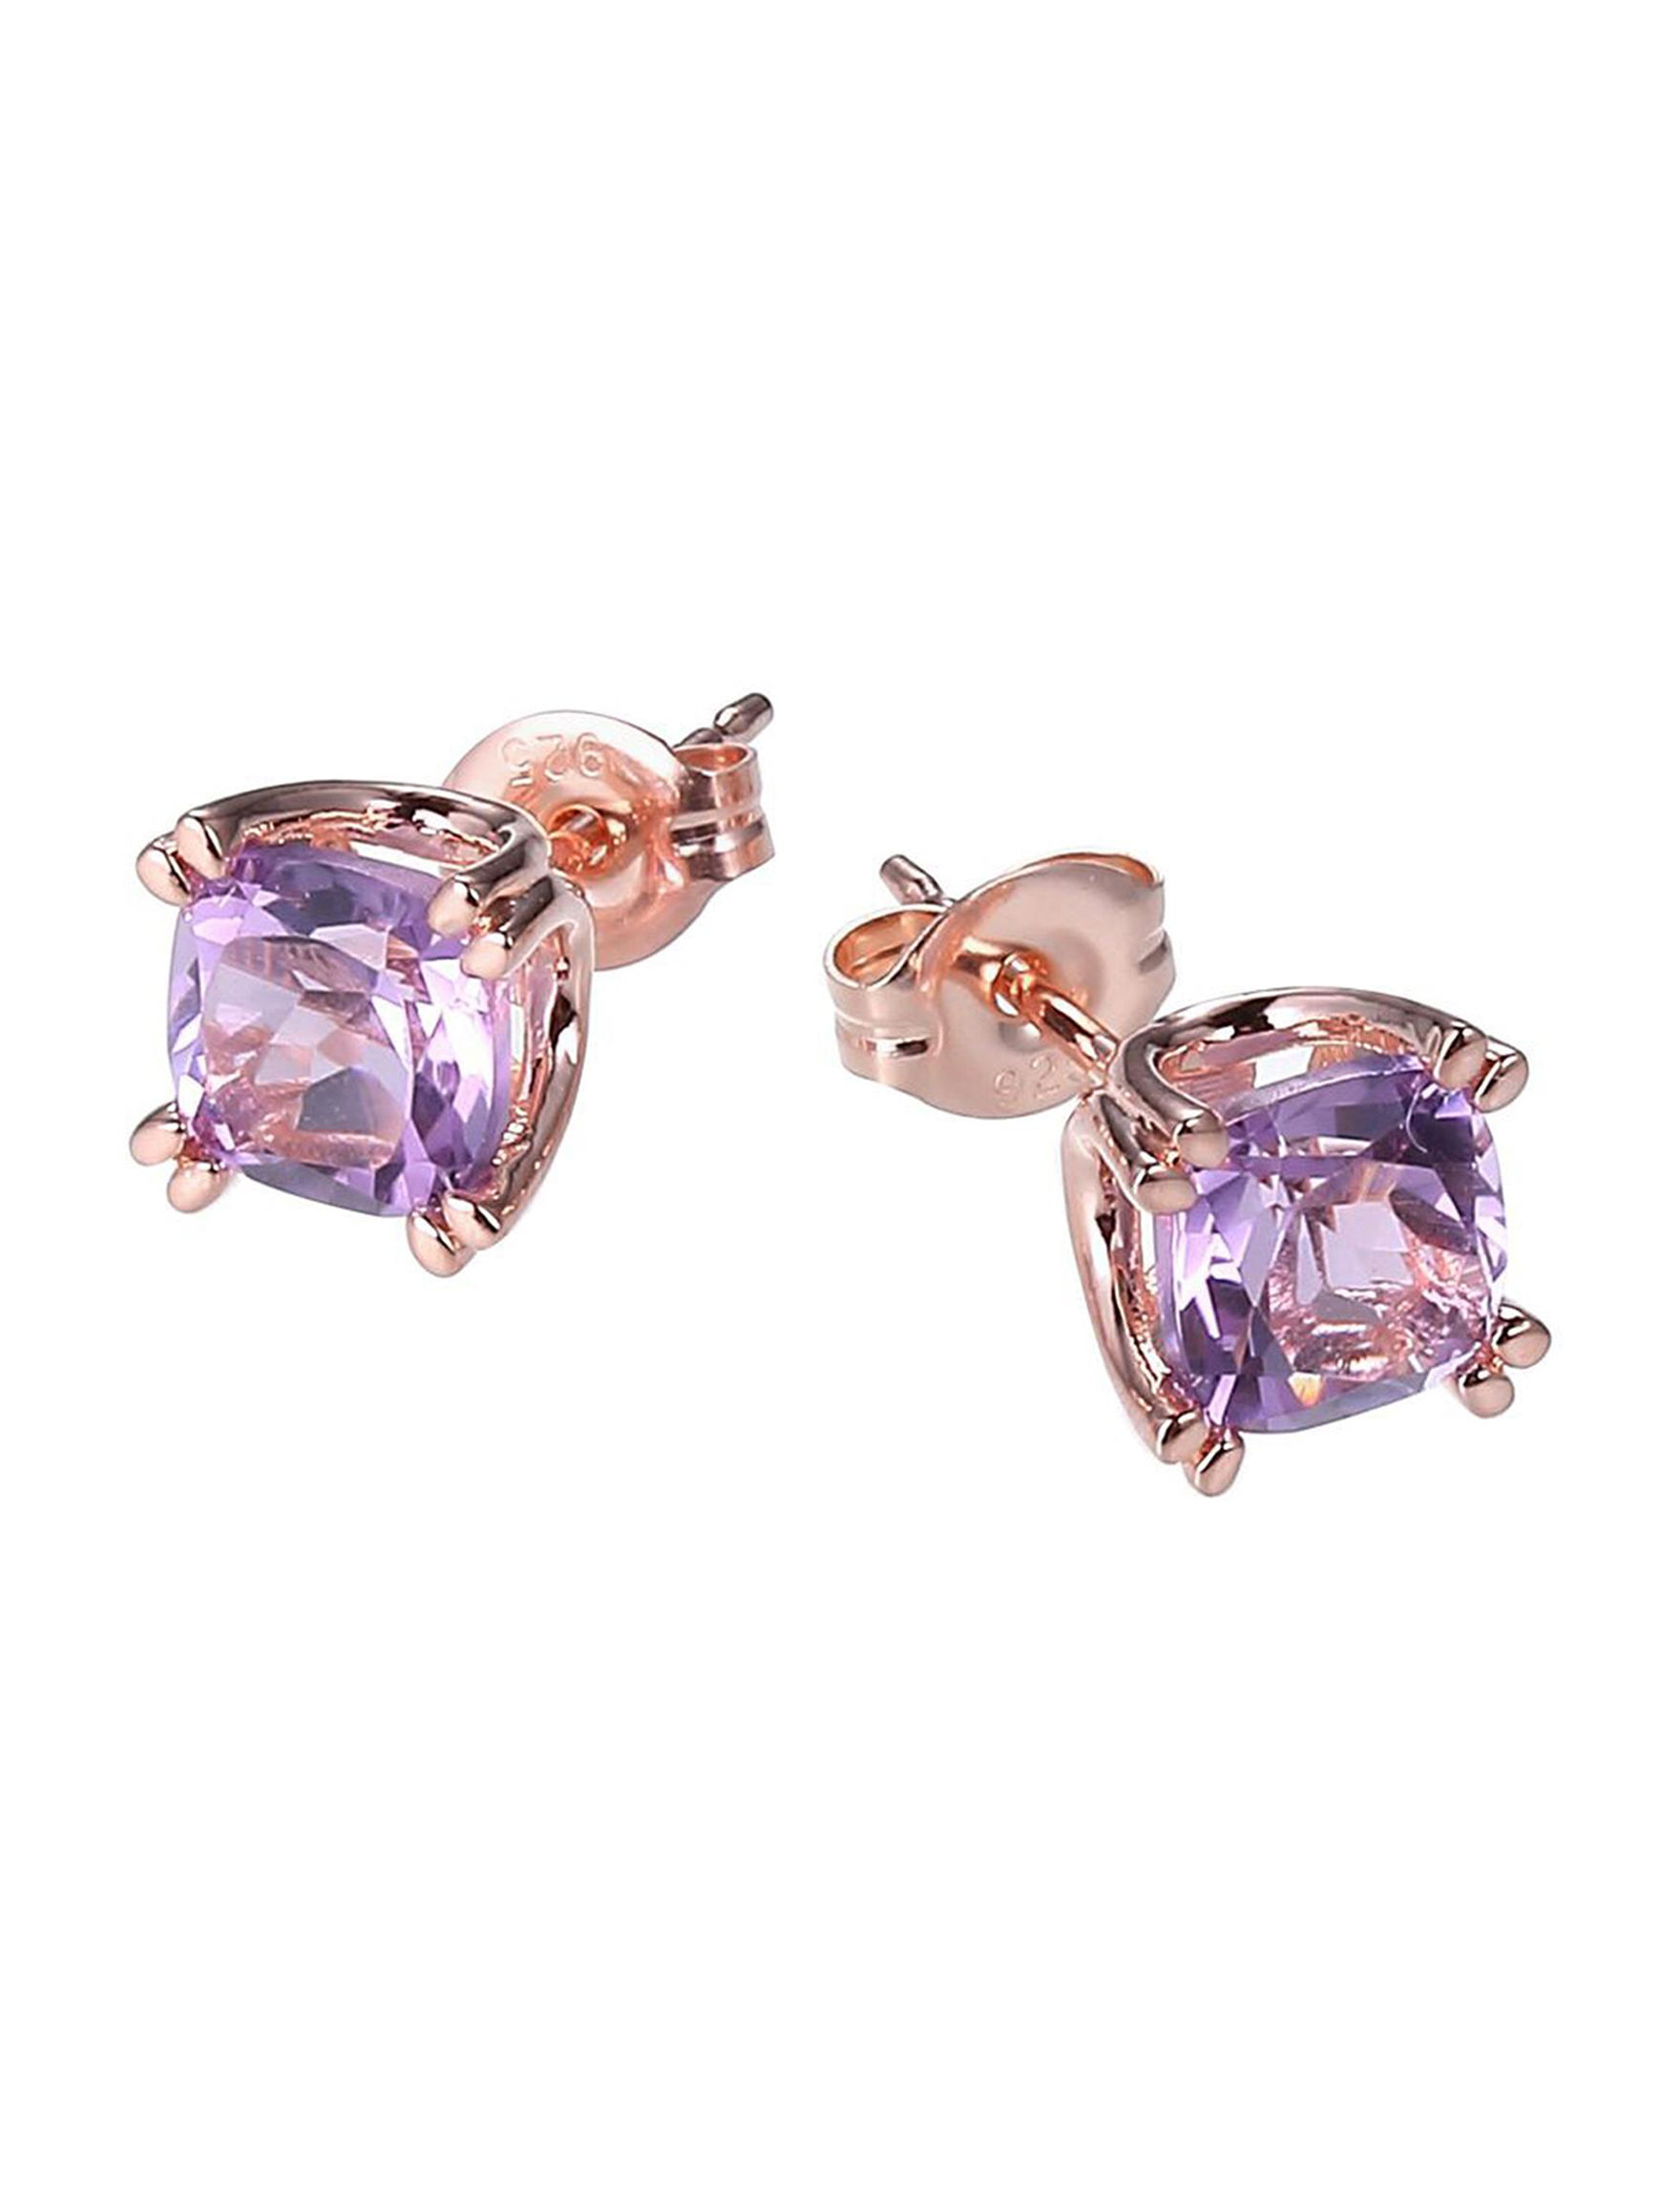 PAJ INC. Rose Gold / Gemstone Studs Earrings Fine Jewelry